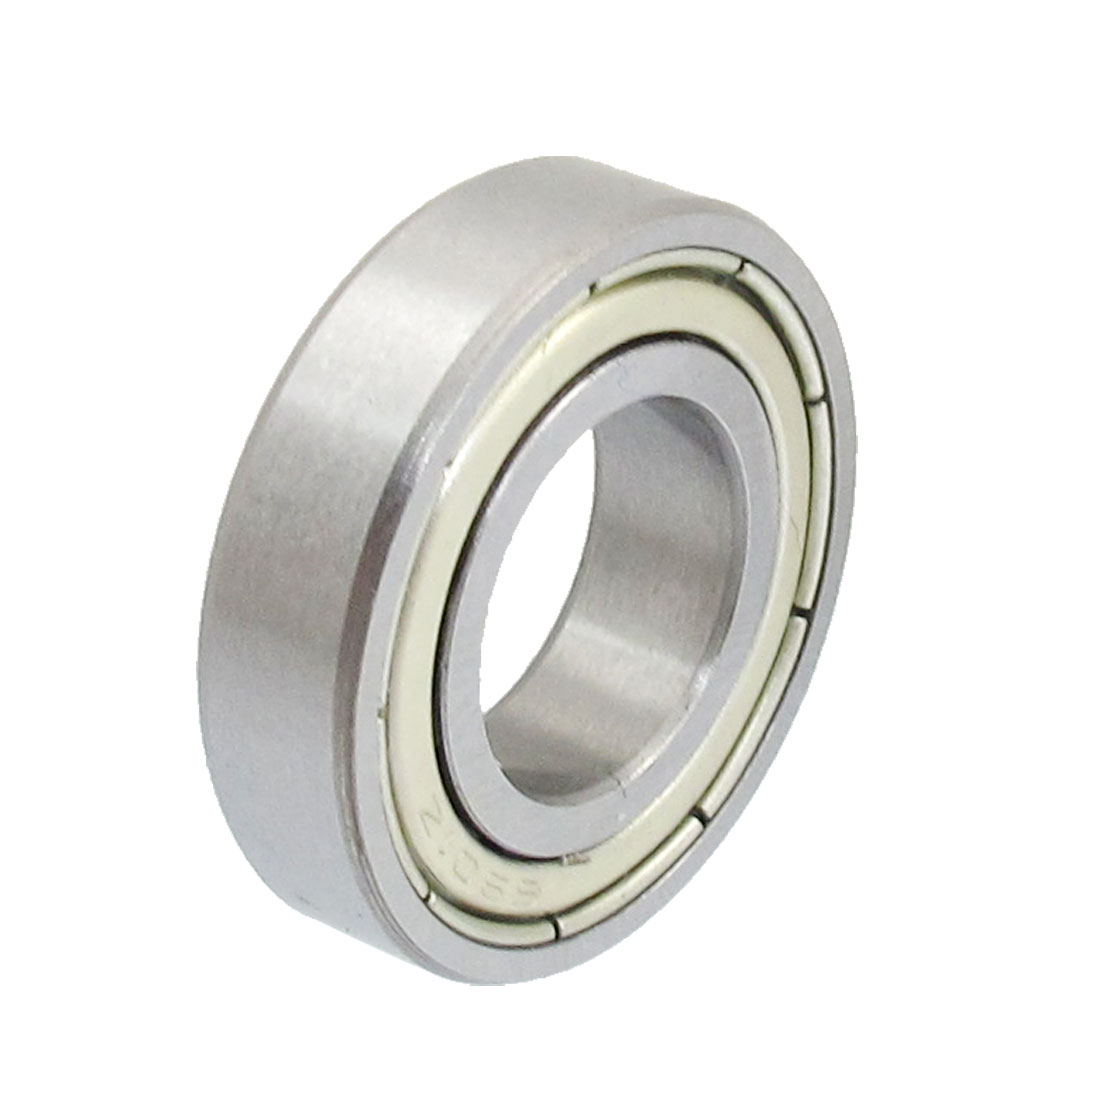 12 x 24 x 6mm 6903 Shielded Miniature Deep Groove Radial Ball Bearing